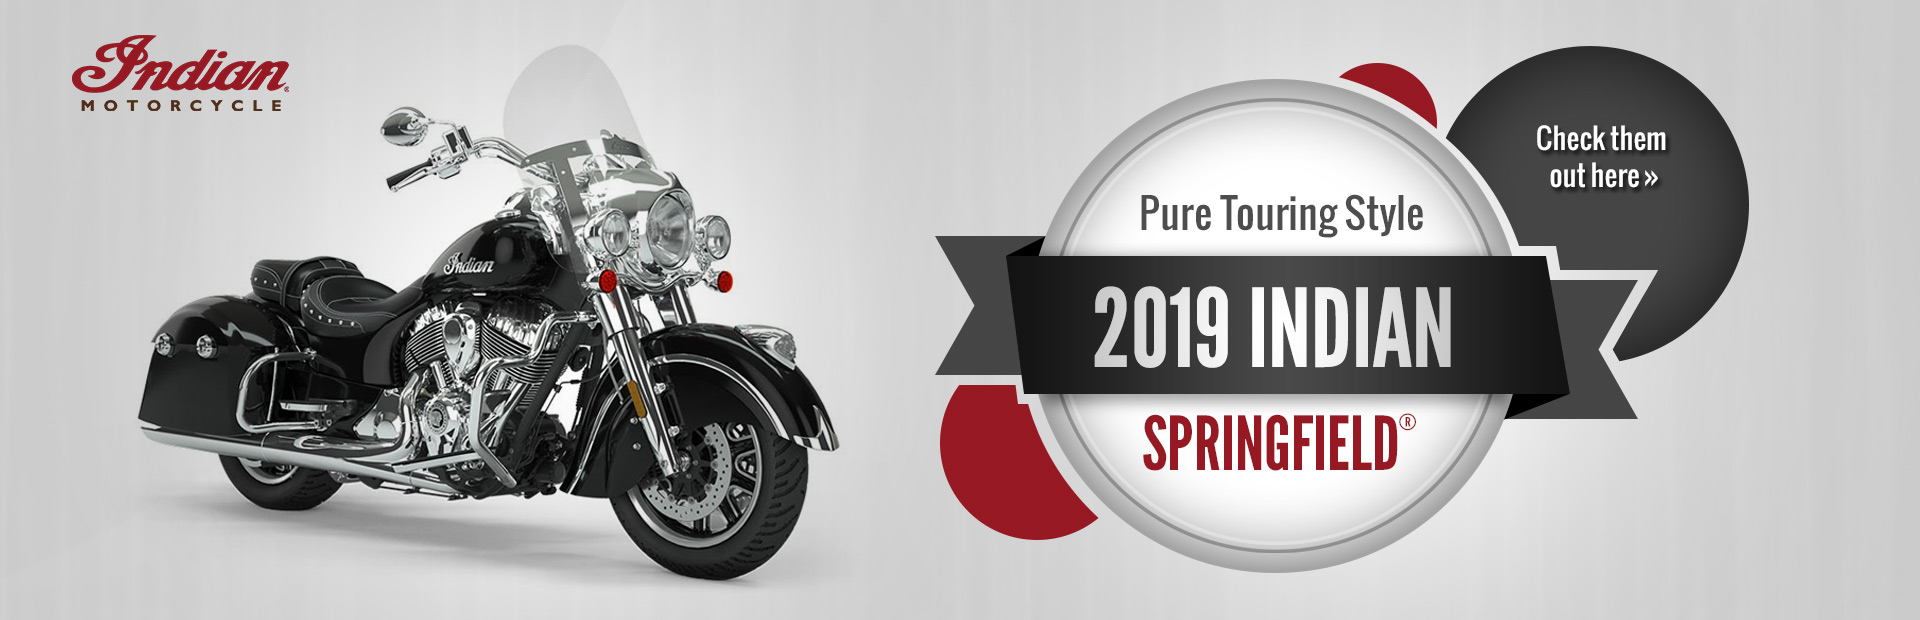 2019 Indian Springfield®: Click here to view the models.